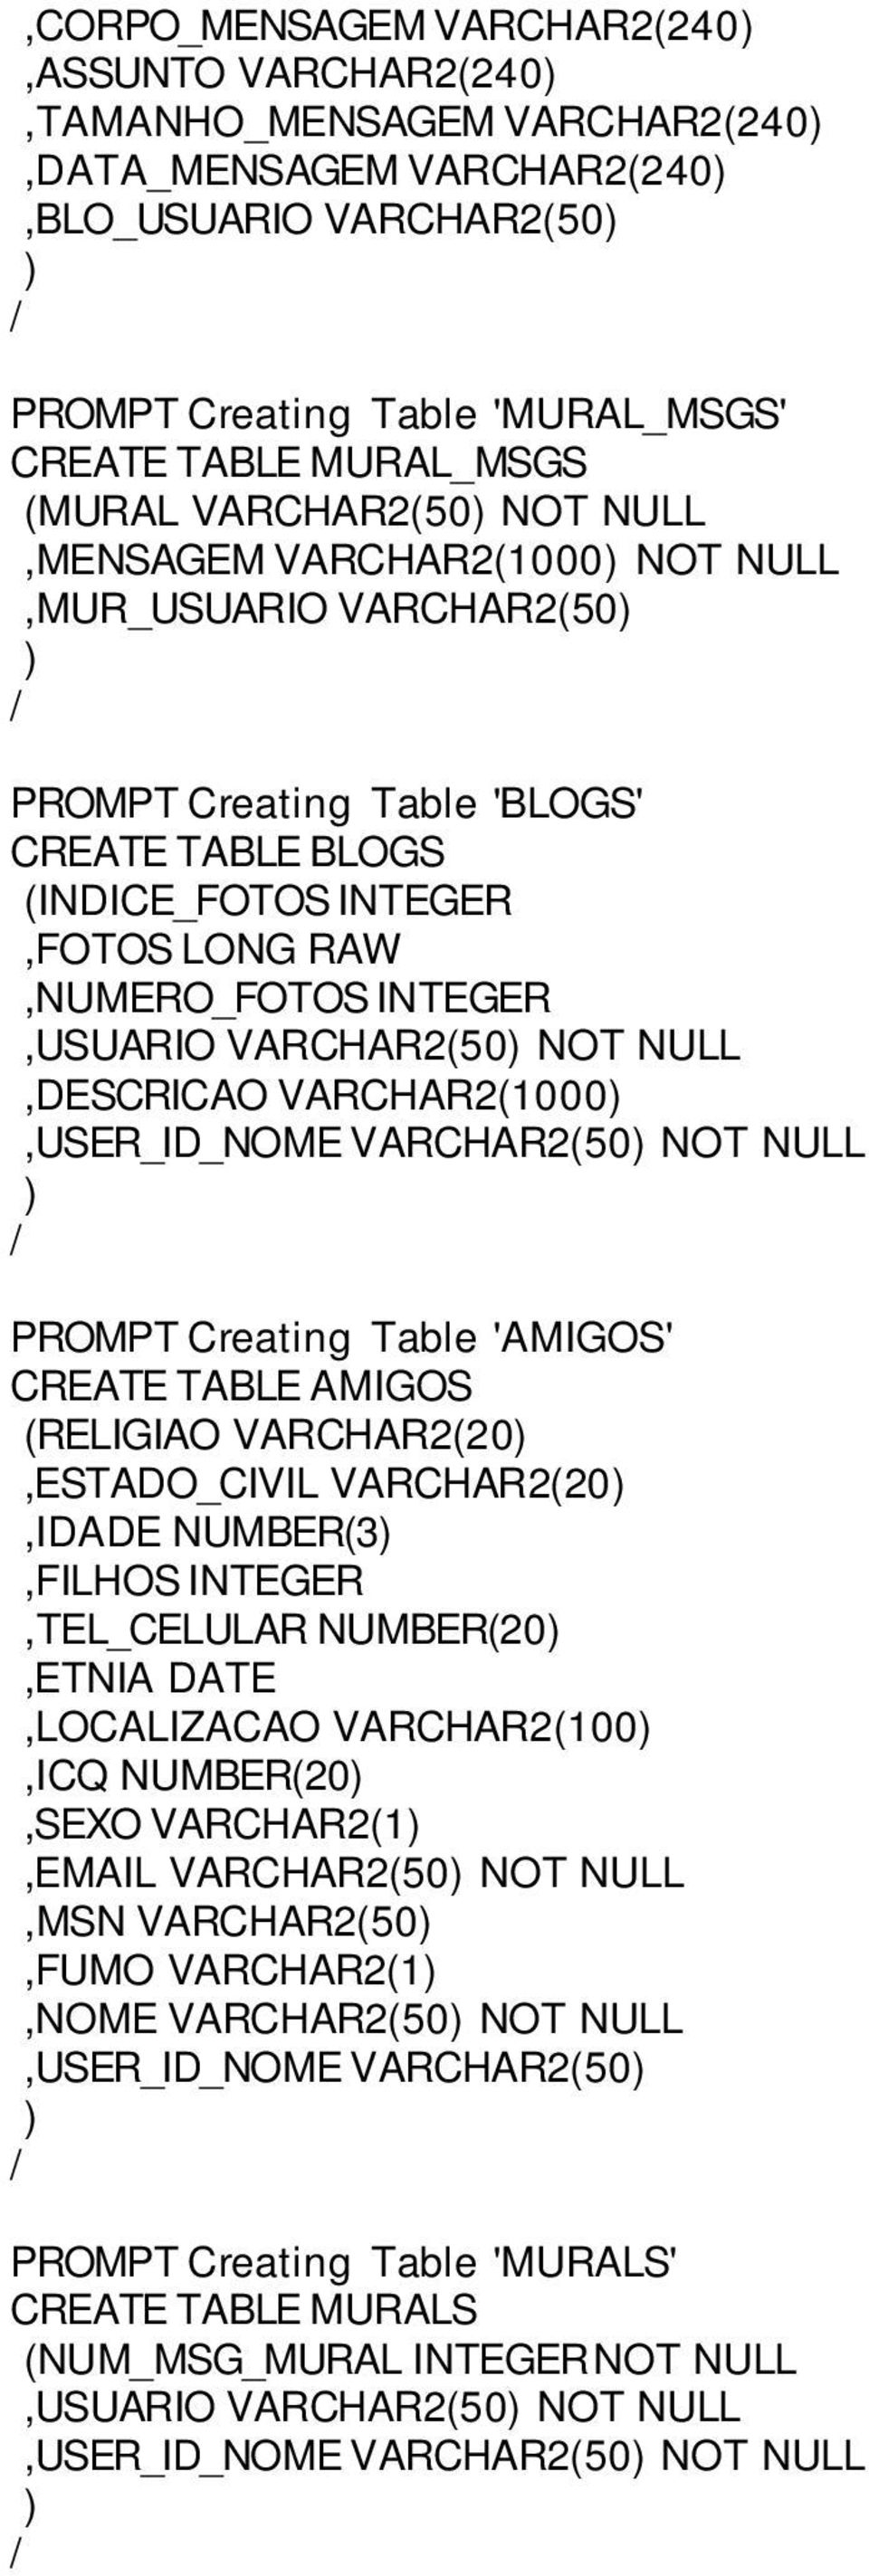 VARCHAR2(50 NOT NULL,DESCRICAO VARCHAR2(1000,USER_ID_NOME VARCHAR2(50 NOT NULL PROMPT Creating Table 'AMIGOS' CREATE TABLE AMIGOS (RELIGIAO VARCHAR2(20,ESTADO_CIVIL VARCHAR2(20,IDADE NUMBER(3,FILHOS